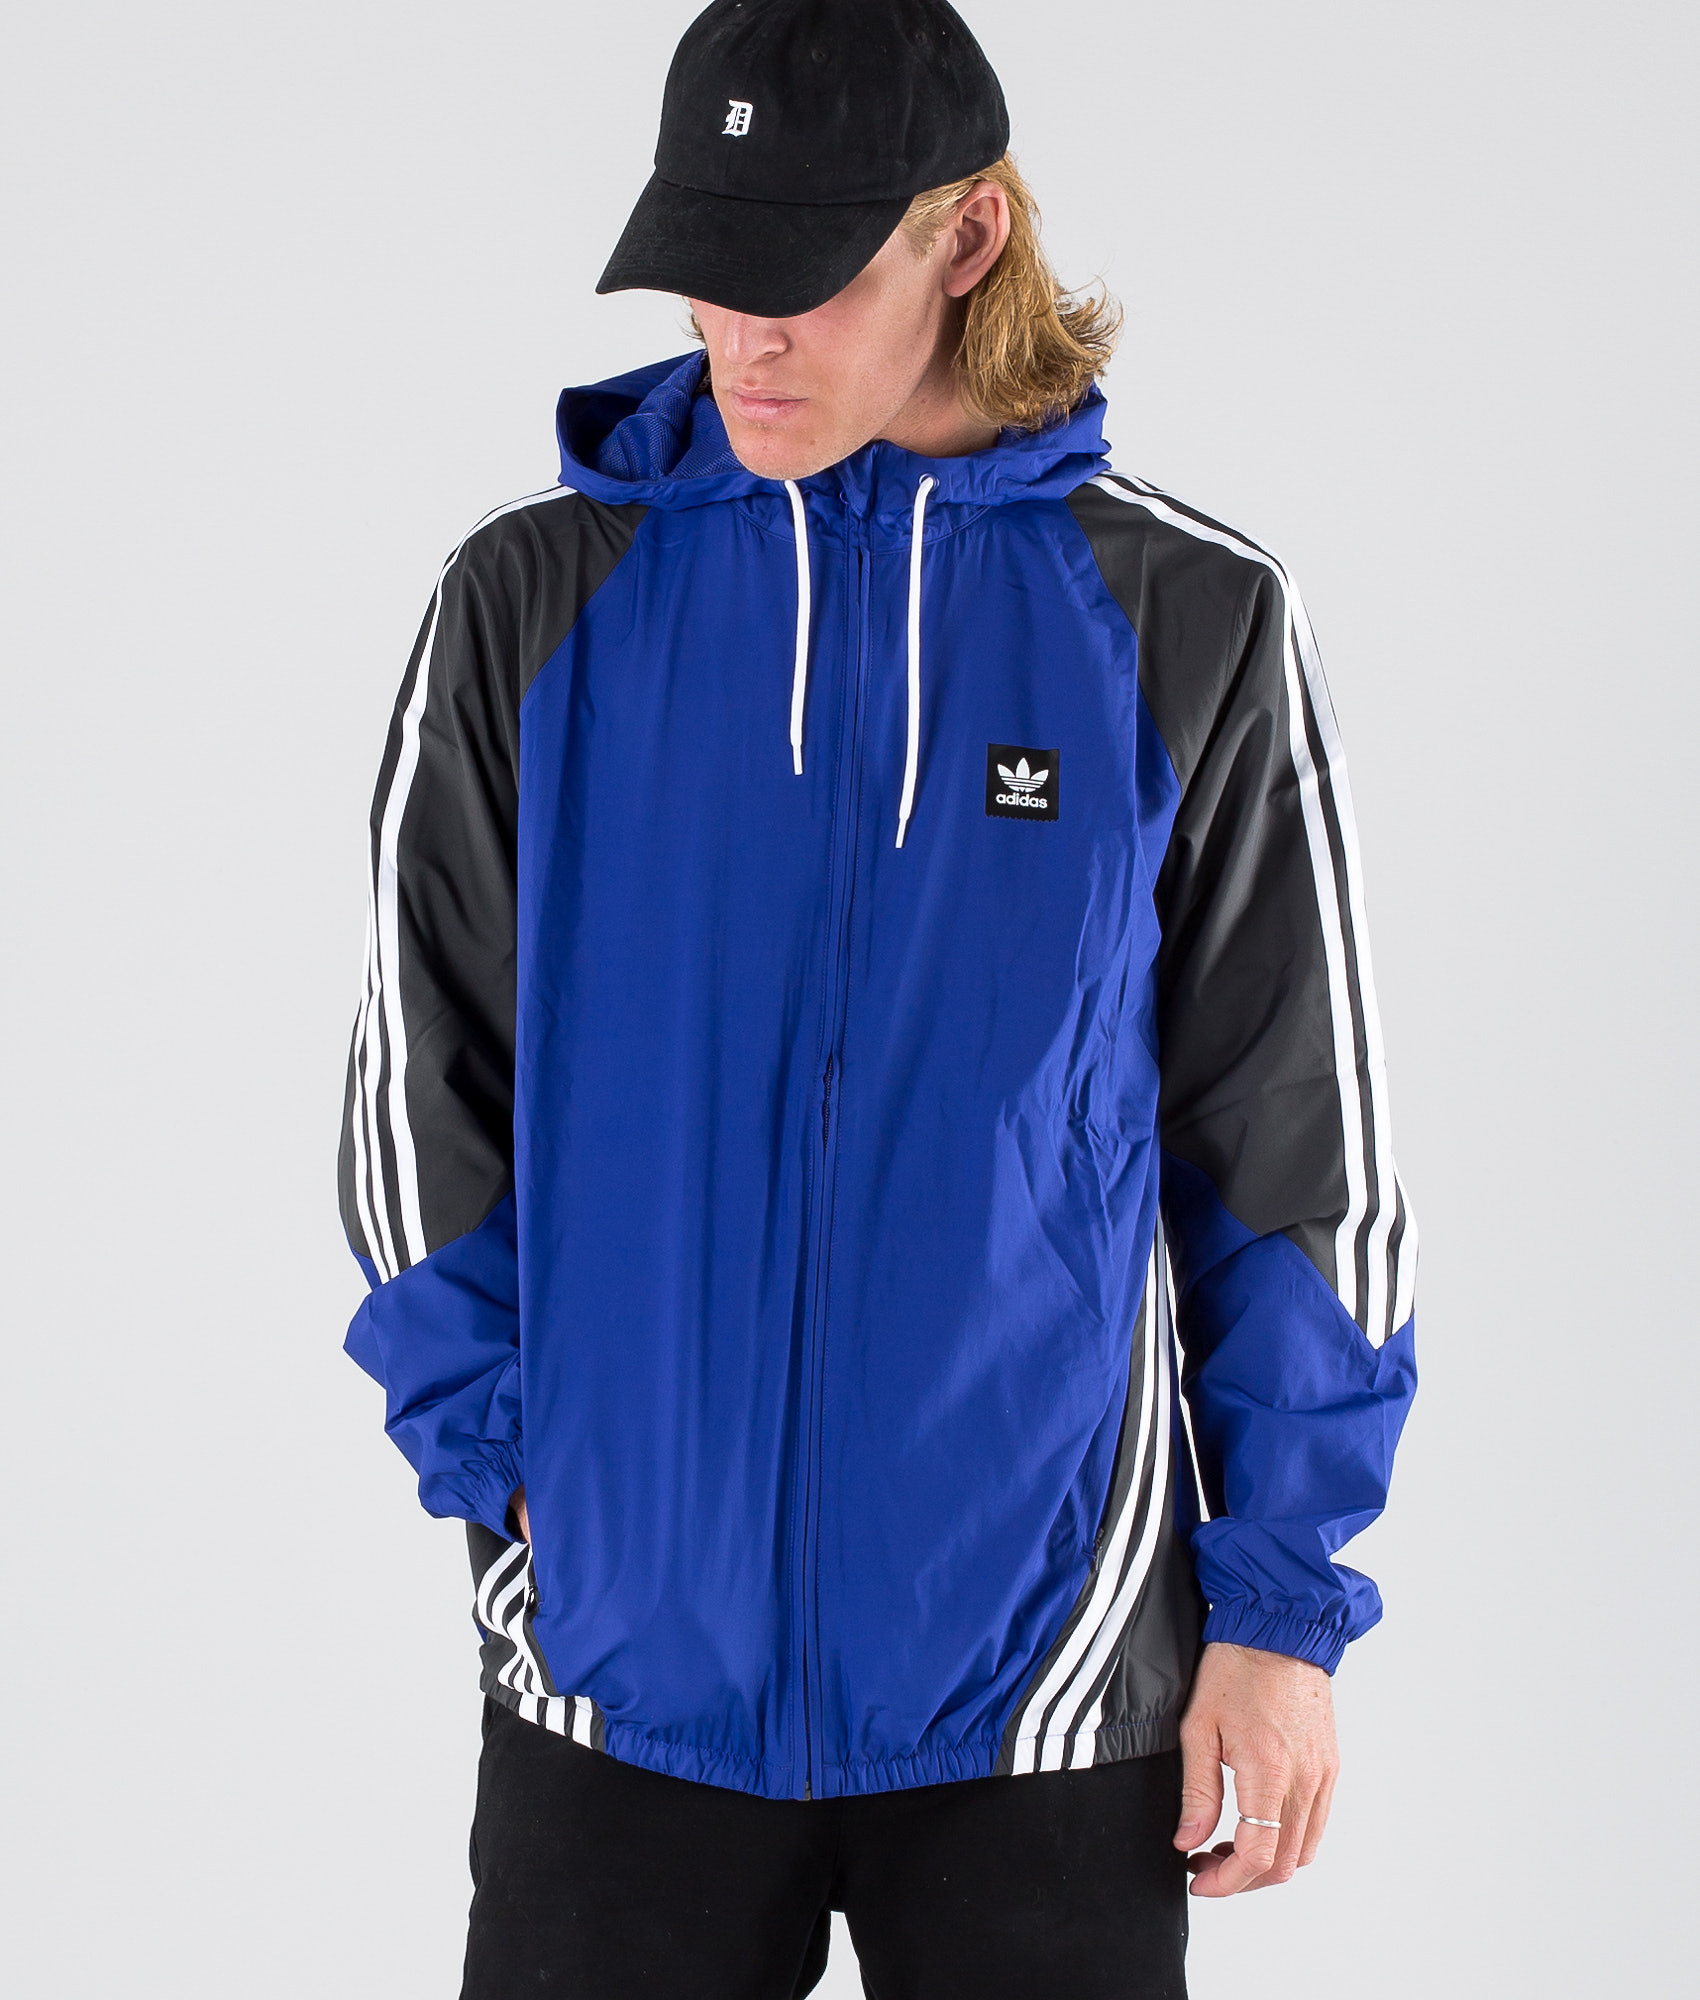 7d4383a1973d Adidas Skateboarding Insley Jacket Active Blue Dgh Solid Grey White ...